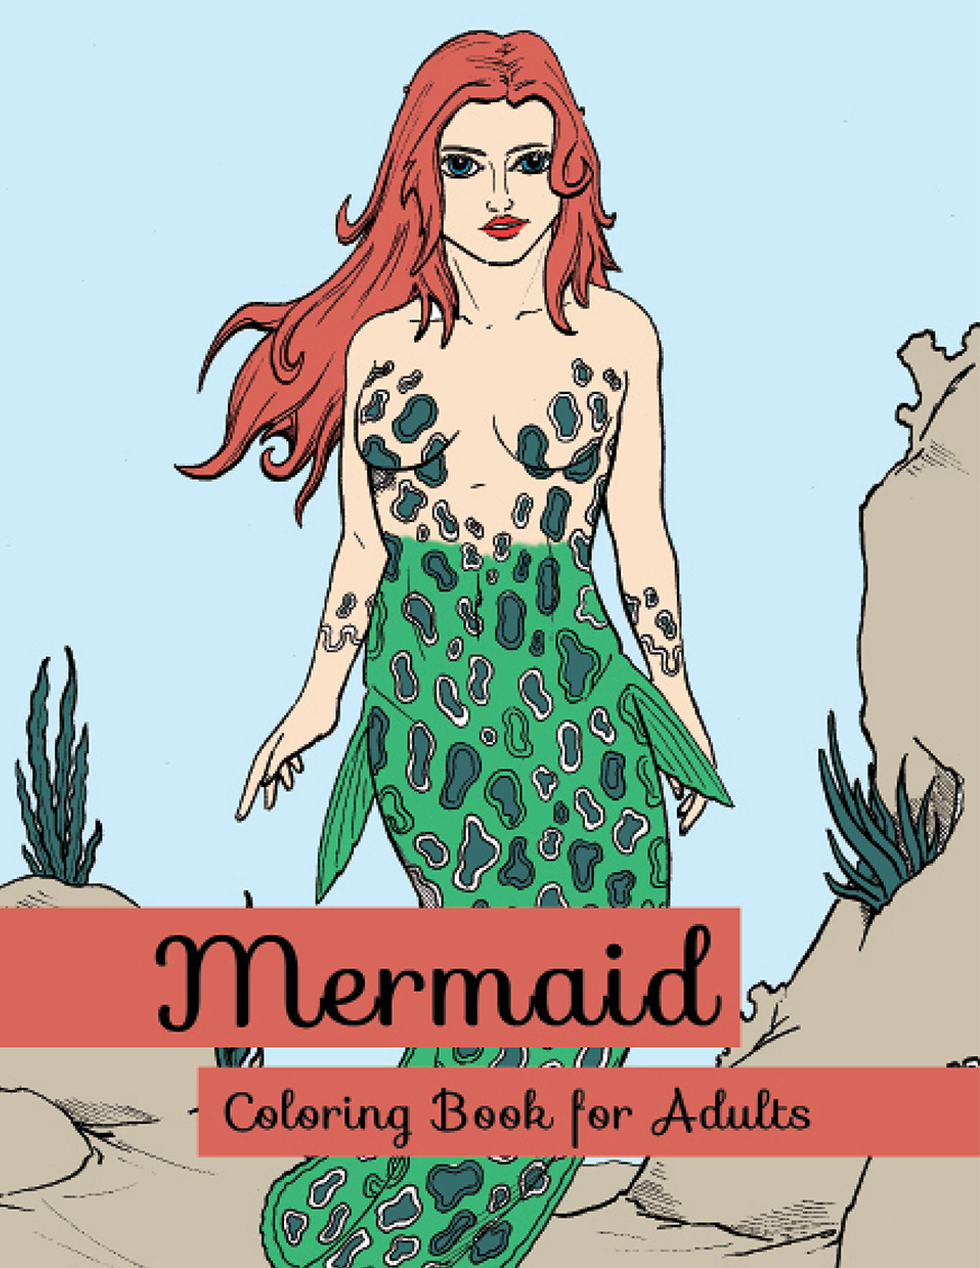 Happies - Mermaid Coloring Books for Adults